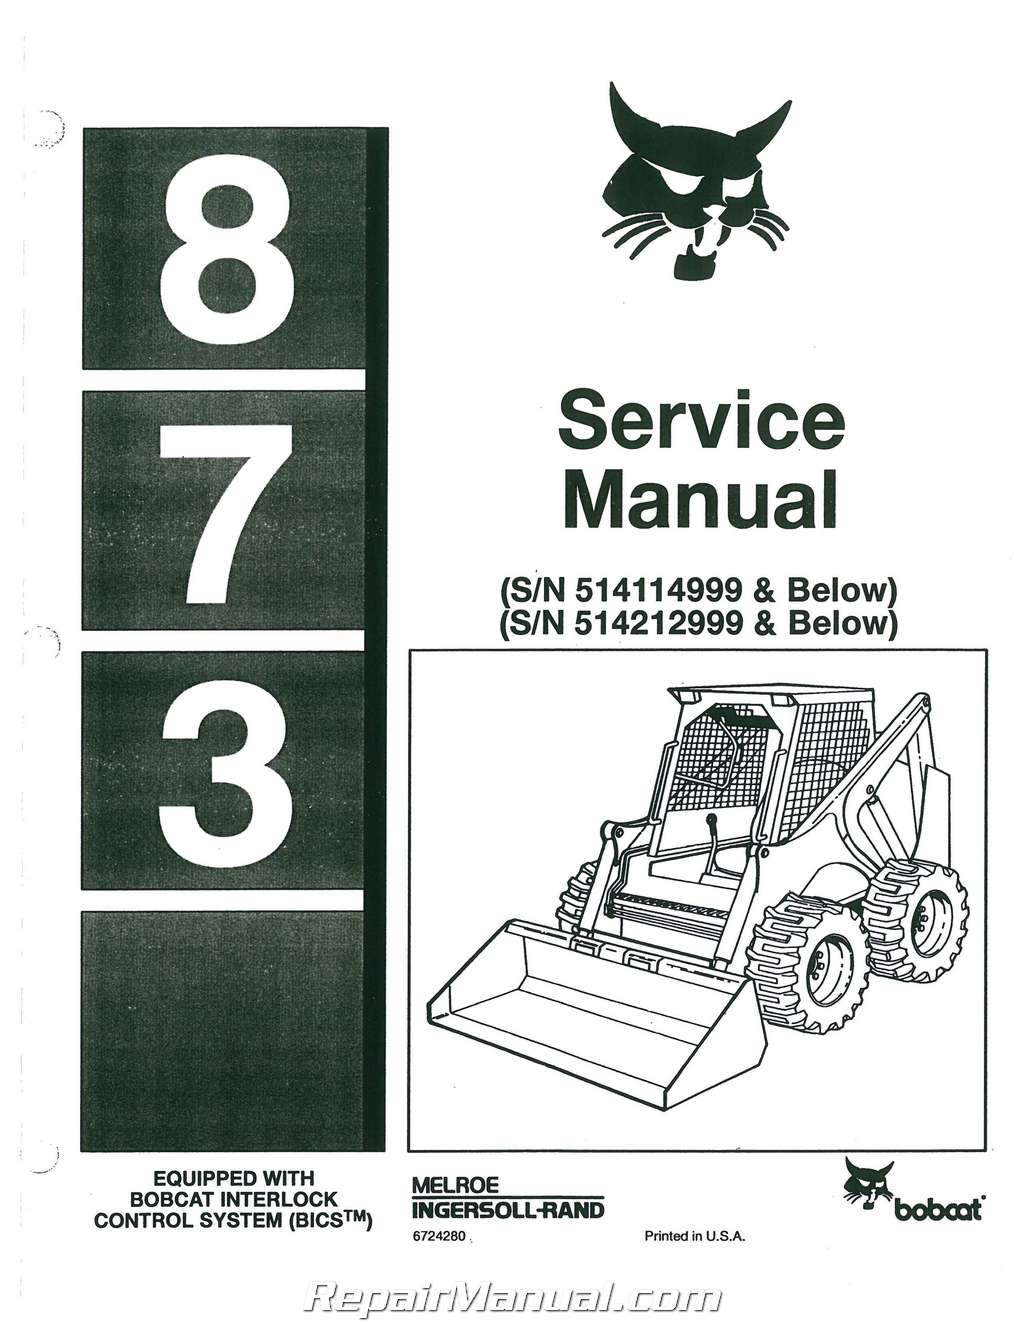 hight resolution of bobcat 873 loader service repair manual download sellfy revision number february date revision route attentionaffecting immediately high flow 743ds follow